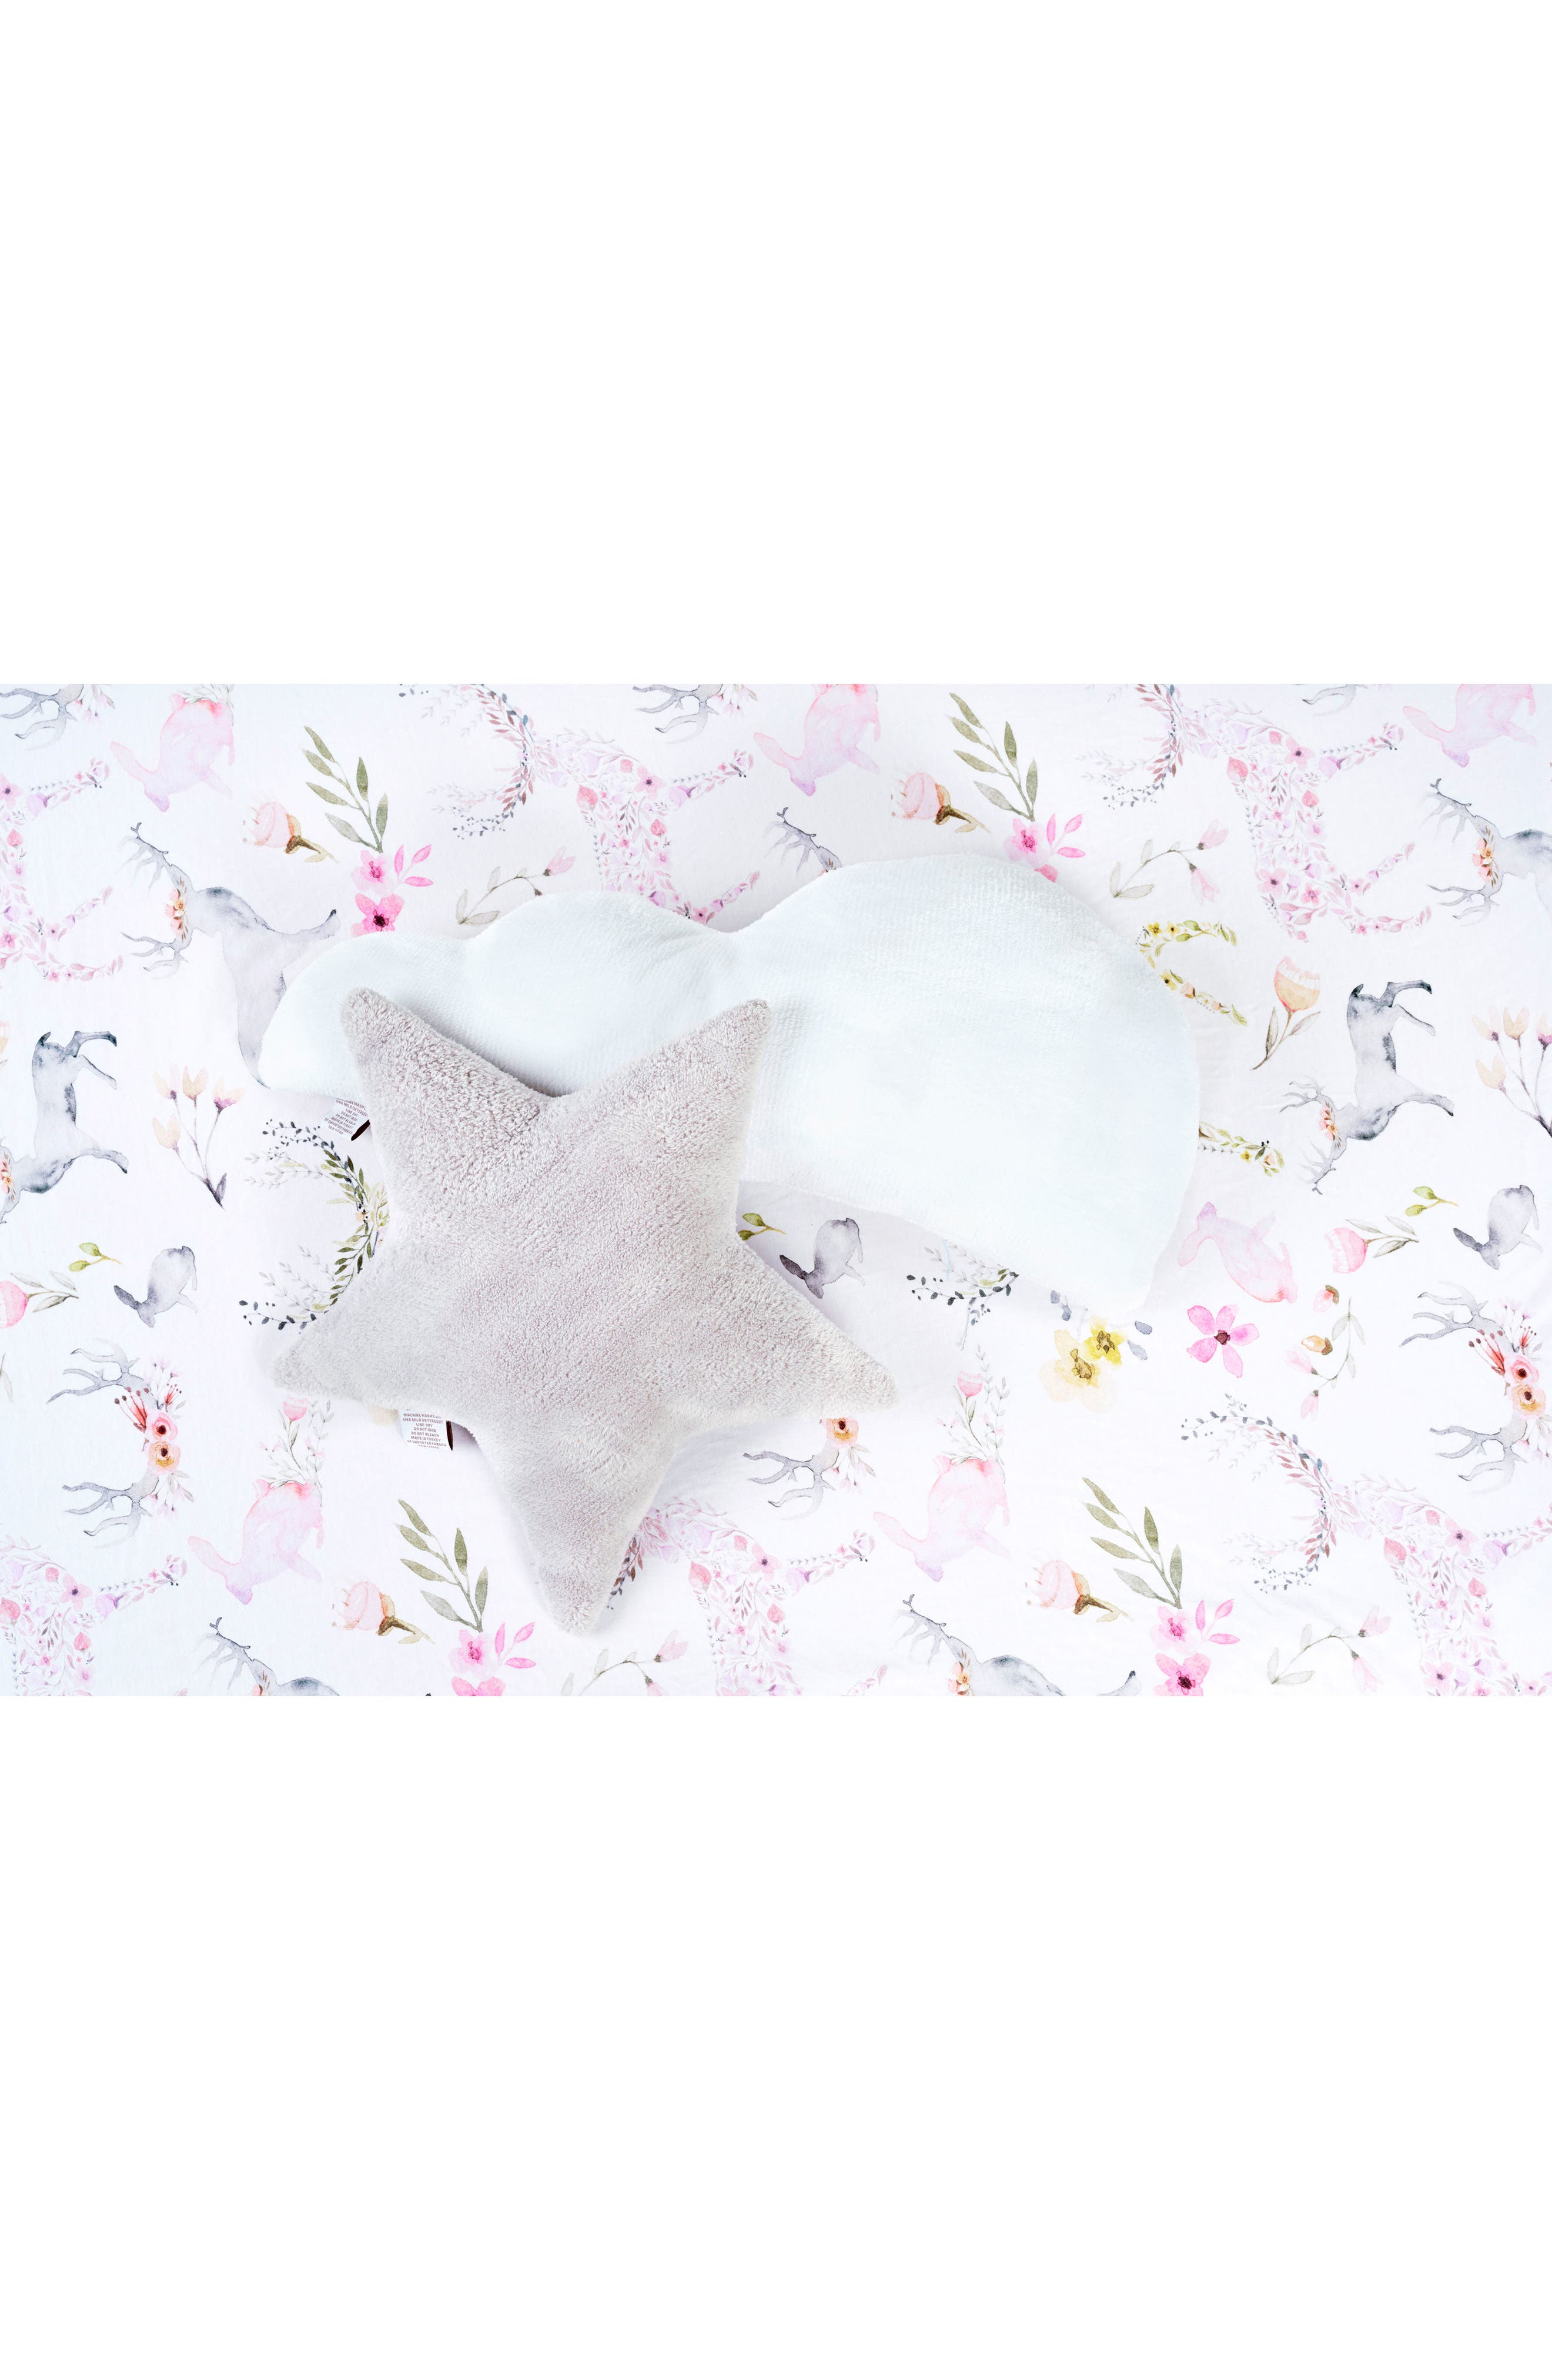 Silver Star & White Cloud Pillow Set,                             Alternate thumbnail 4, color,                             Fawn